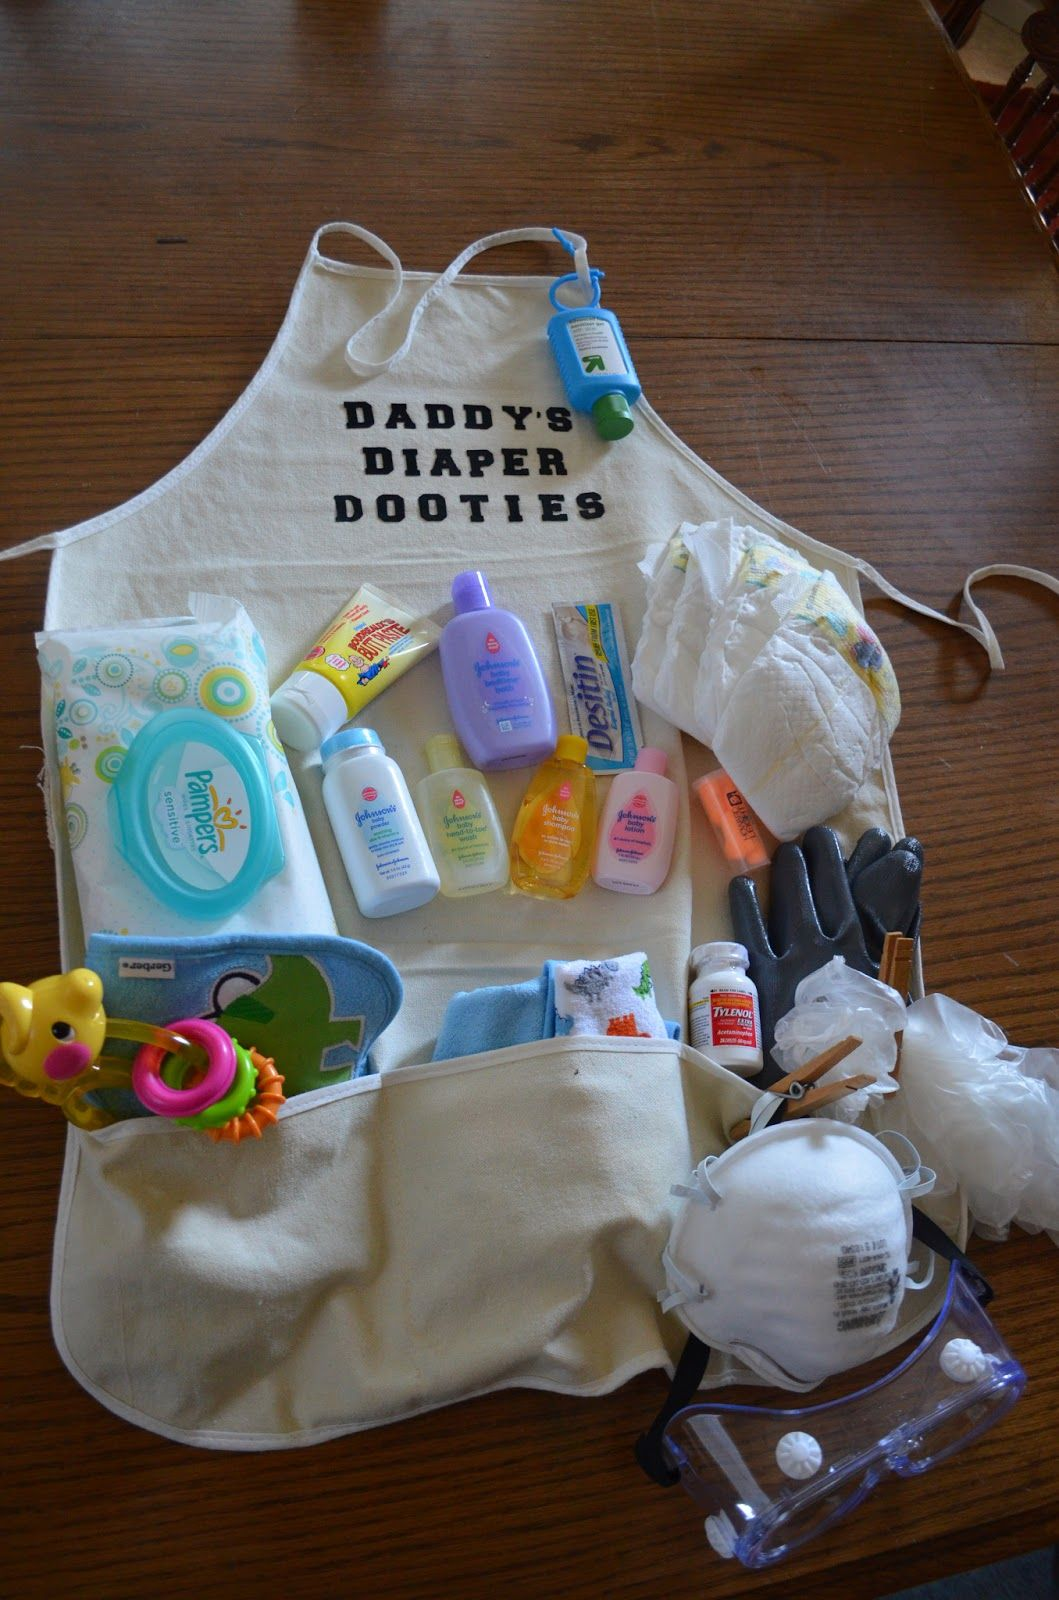 Decorate Baby Bibs This Would So Fun For A Co Ed Baby Shower Daddys Diaper Dooties